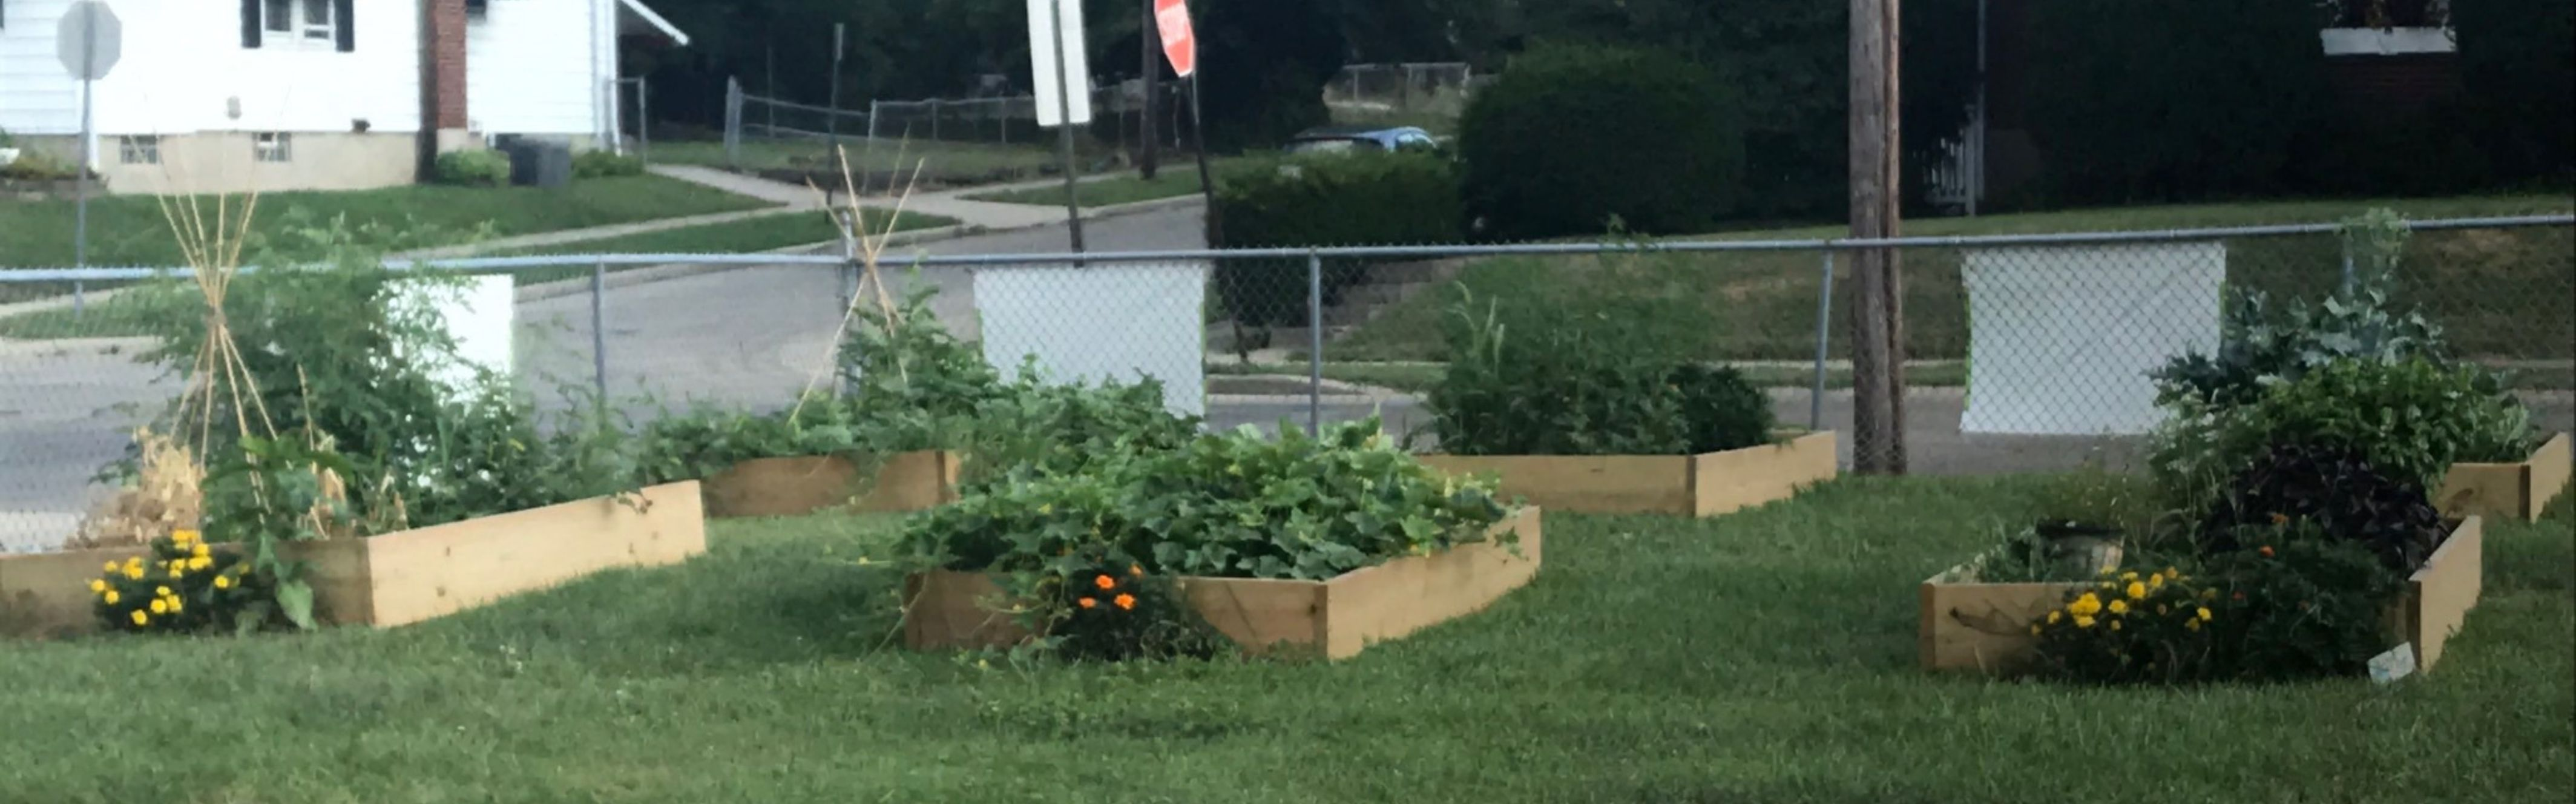 picture of land with raised garden beds